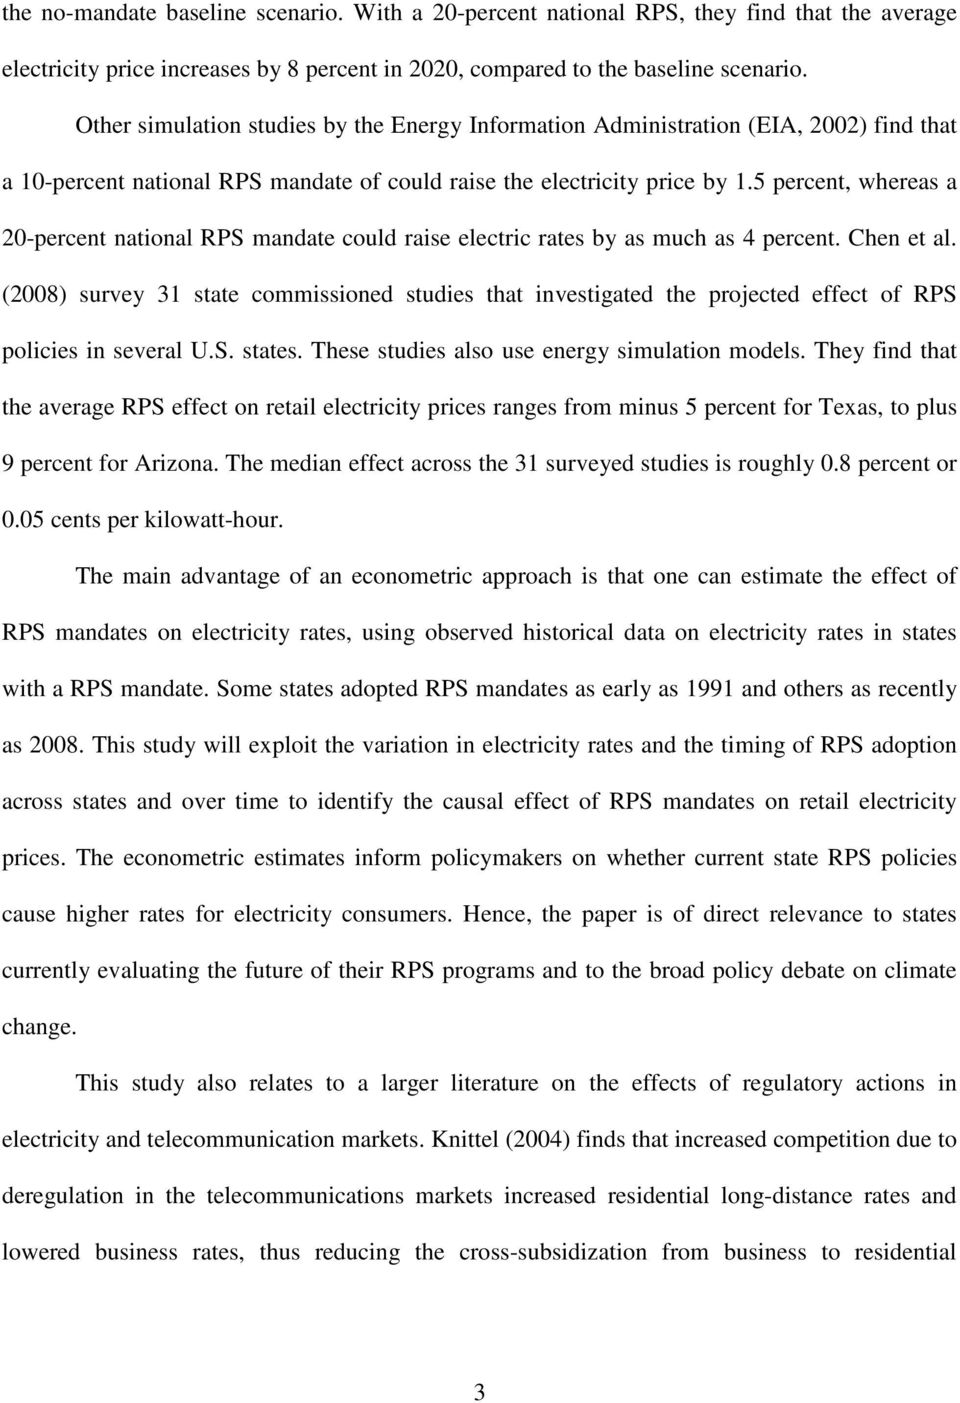 5 percent, whereas a 20-percent national RPS mandate could raise electric rates by as much as 4 percent. Chen et al.